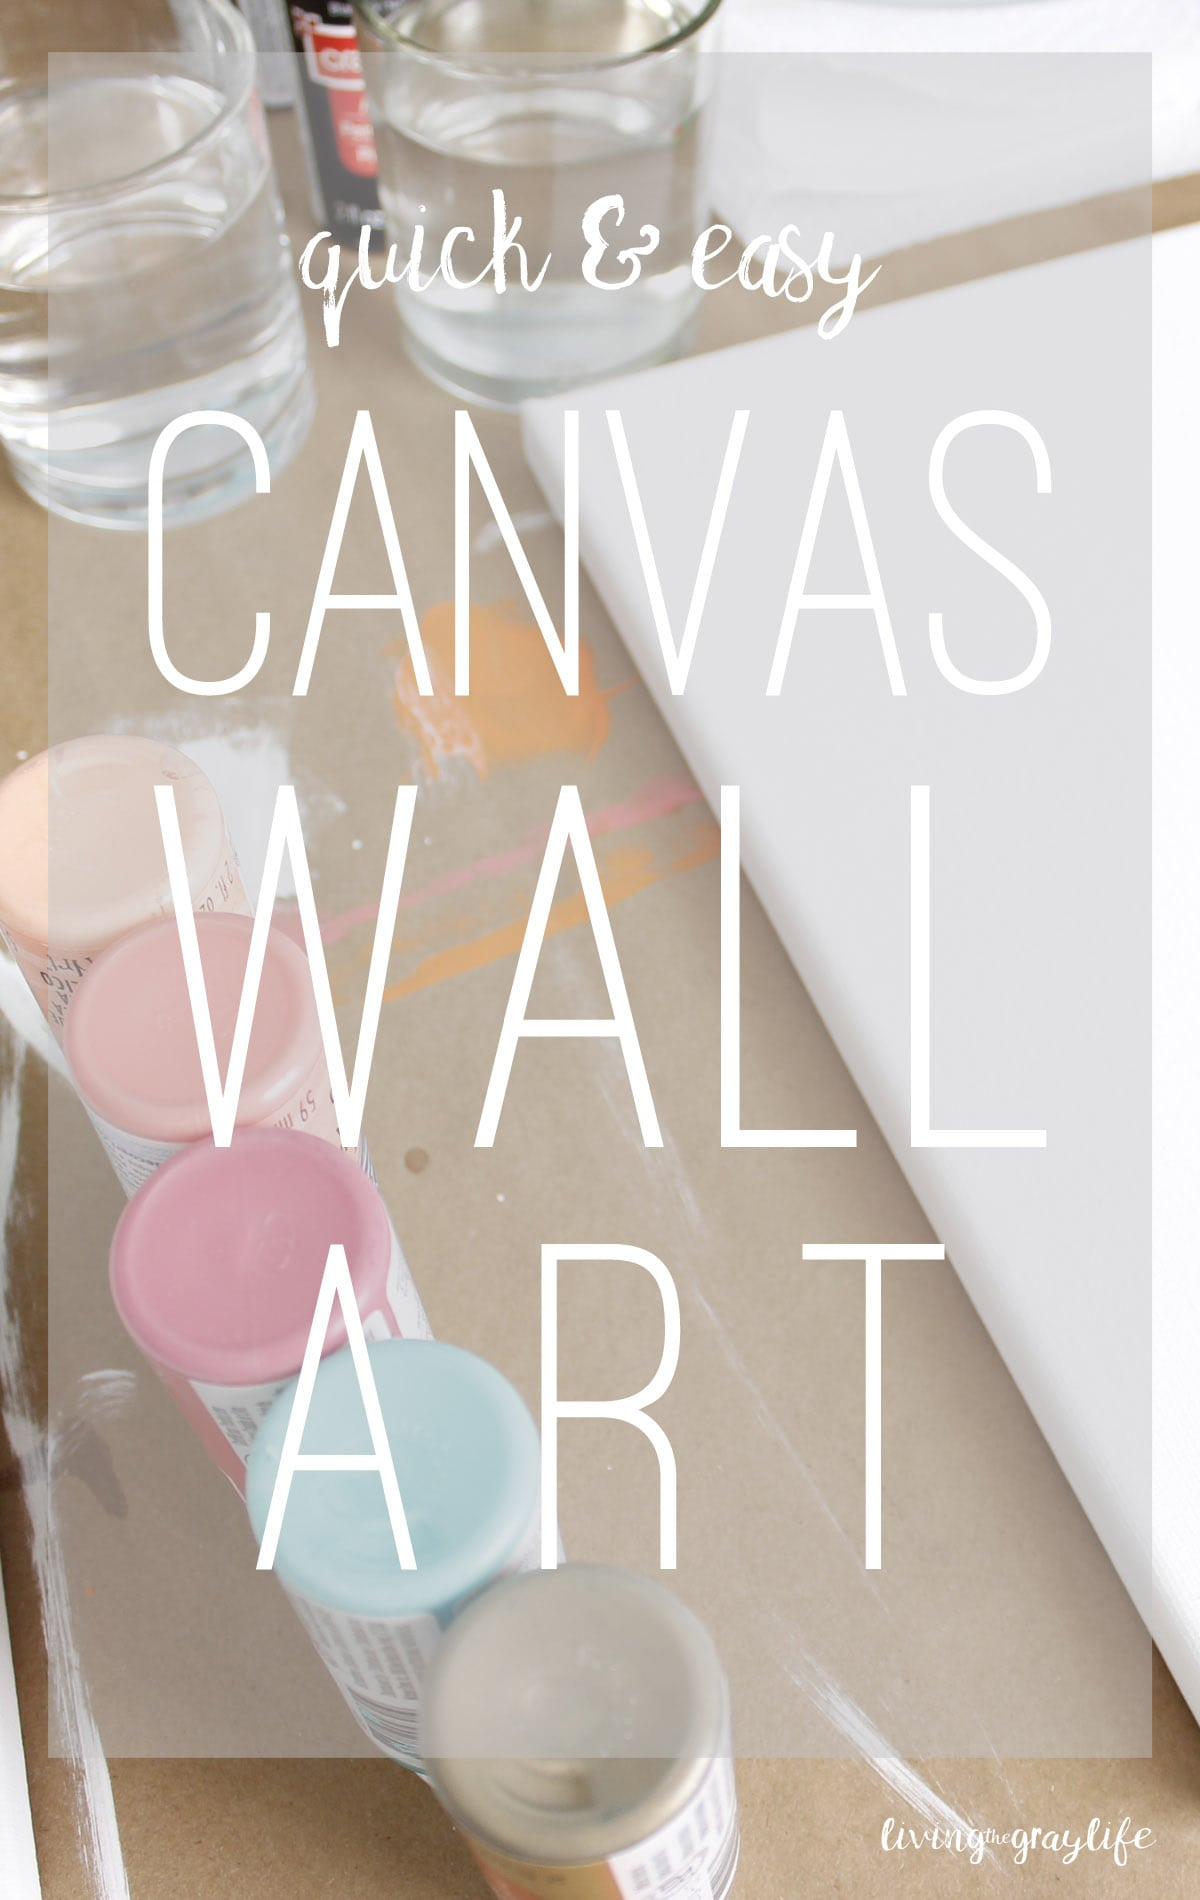 Looking For A Quick, Easy DIY To Do This Weekend? These DIY Canvases Are Part 74